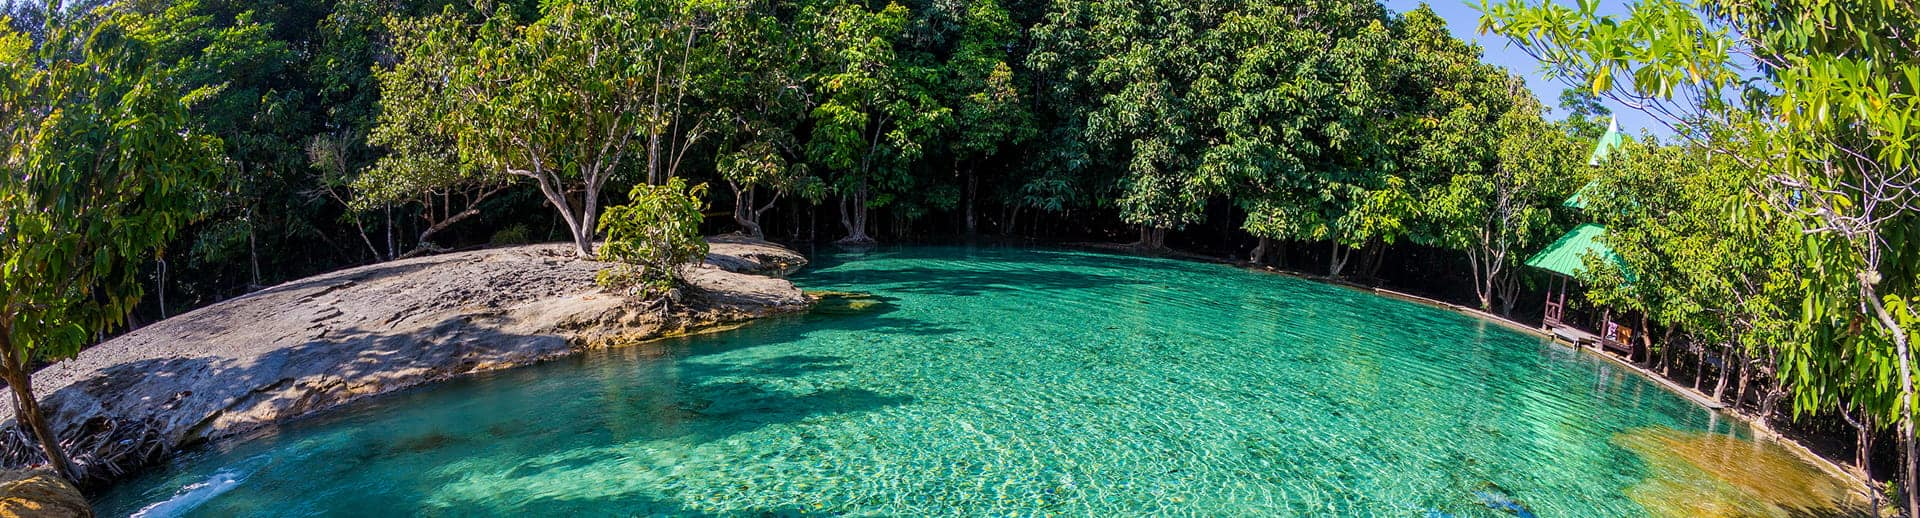 emerald pool tiger cave tour krabi